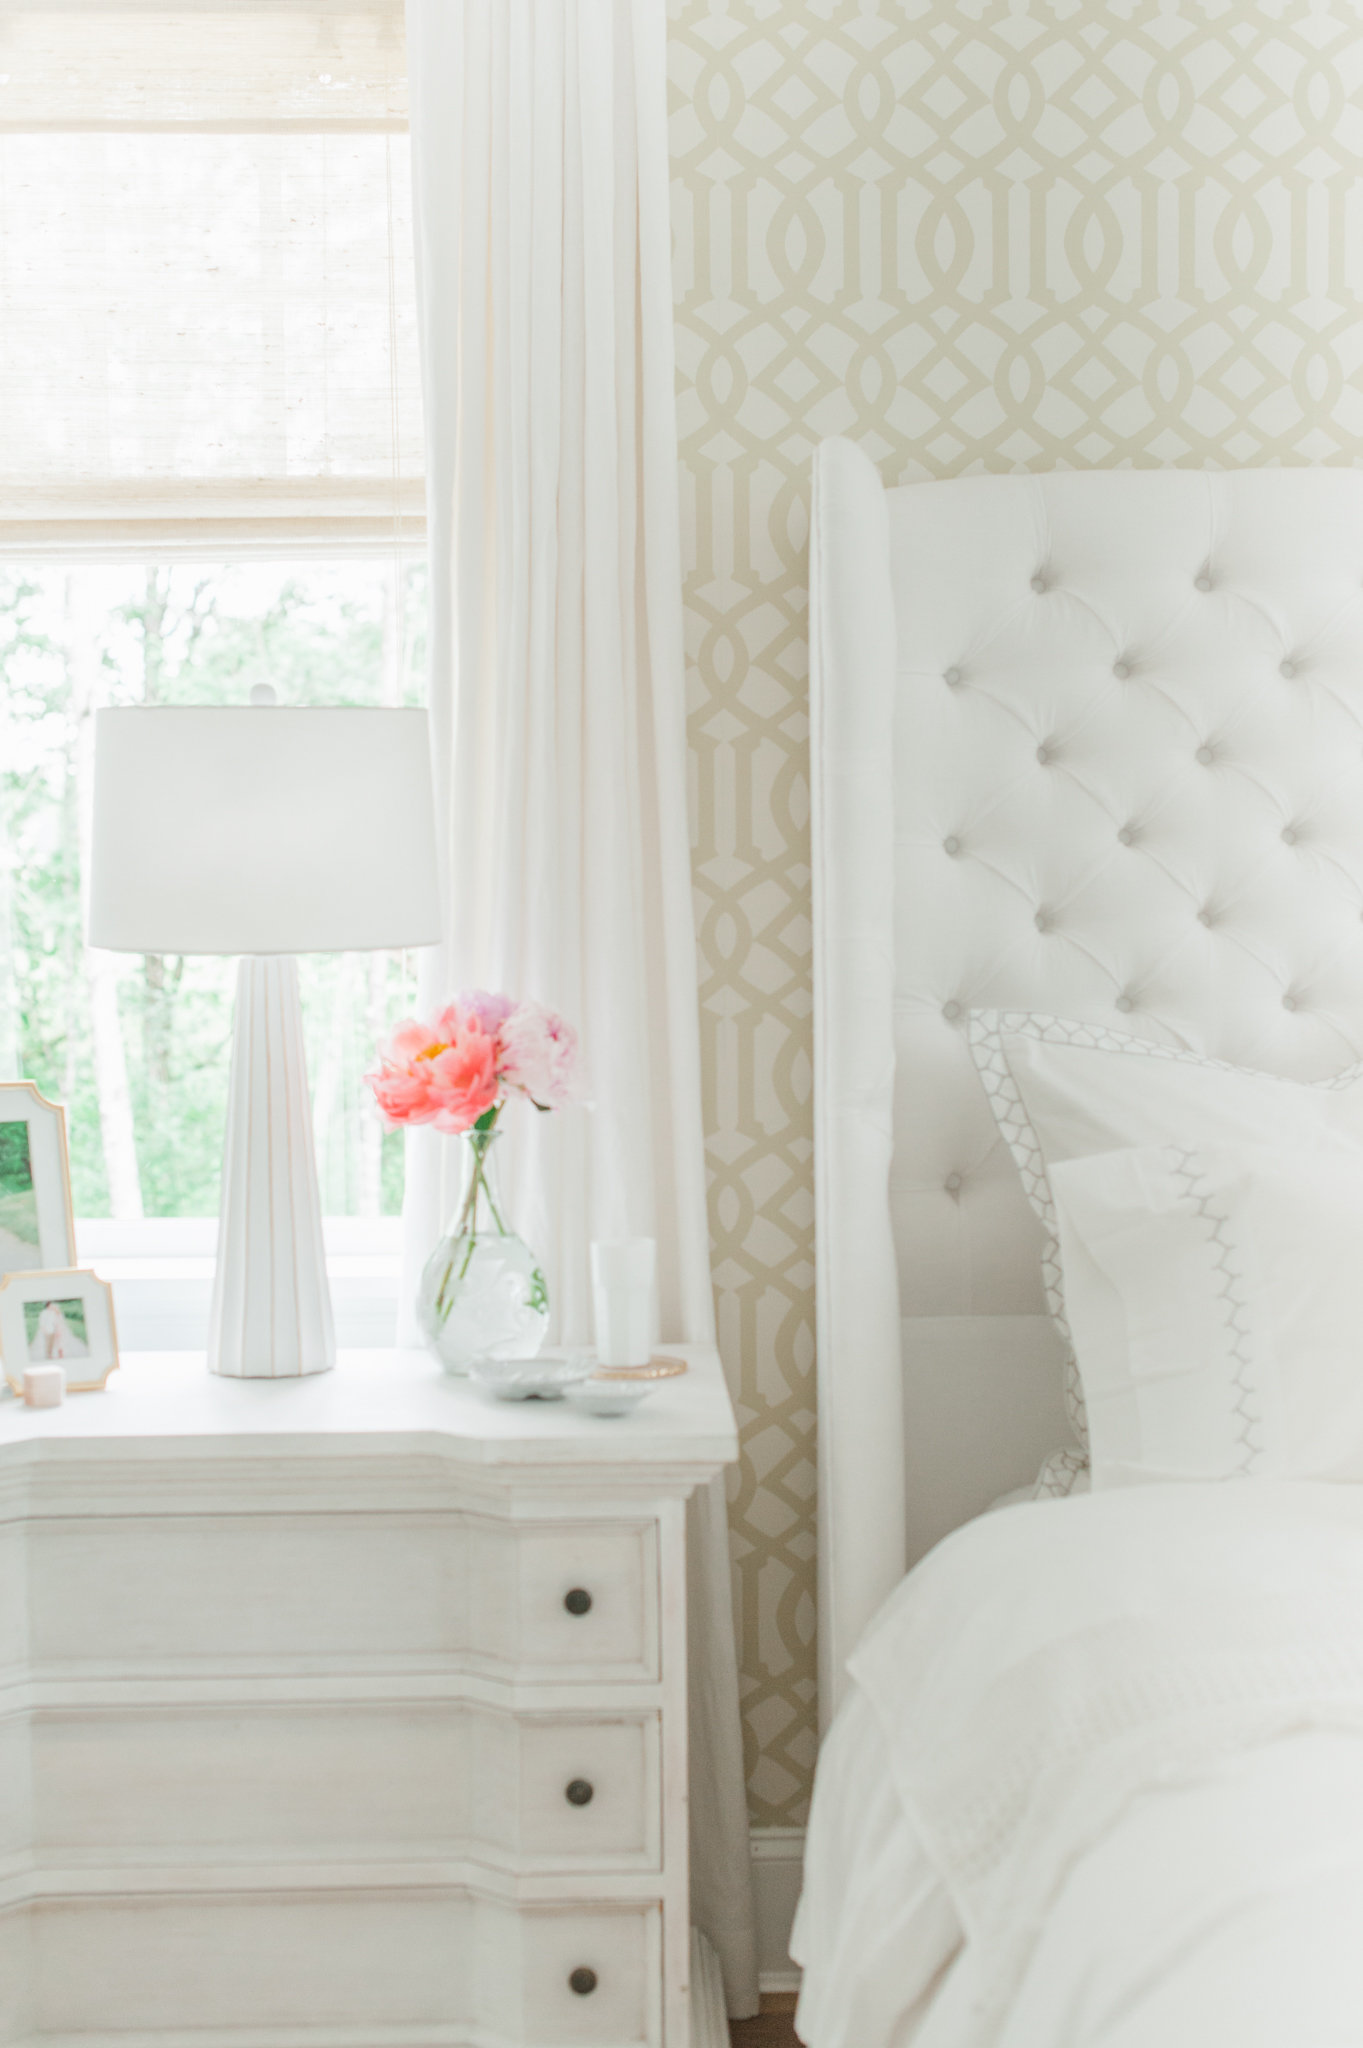 ... Master Bedroom Wallpaper Cross Design White MH Home Monika Hibbs ...